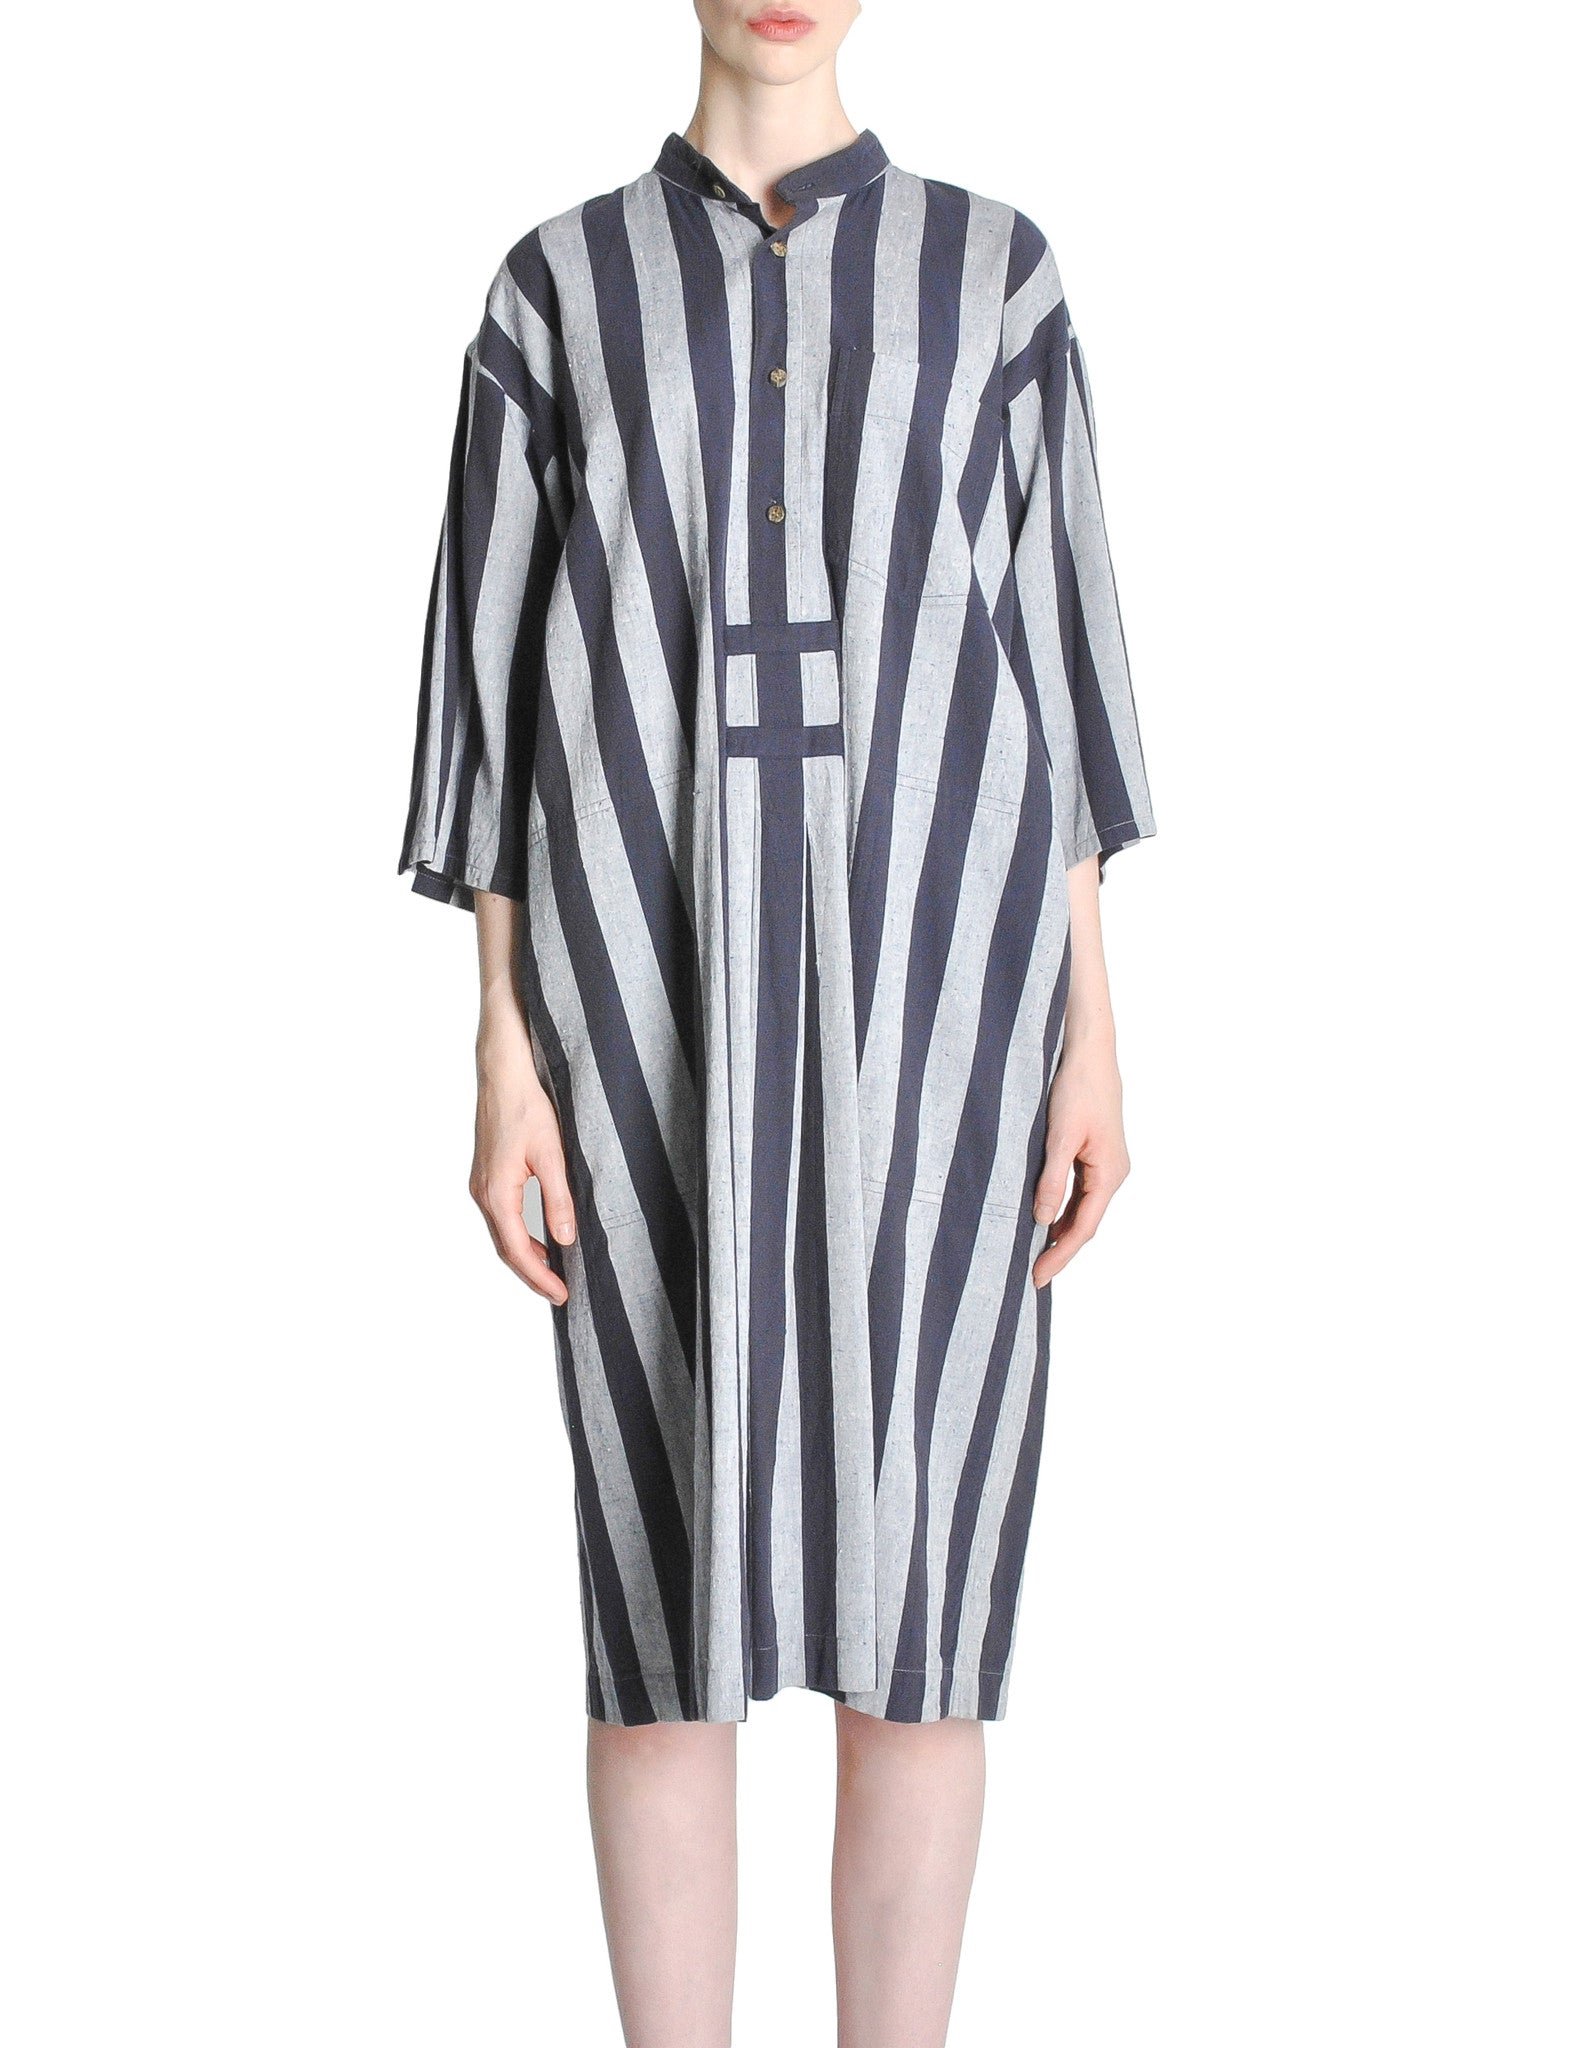 Issey Miyake Plantation Vintage Striped Dress - Amarcord Vintage Fashion  - 1